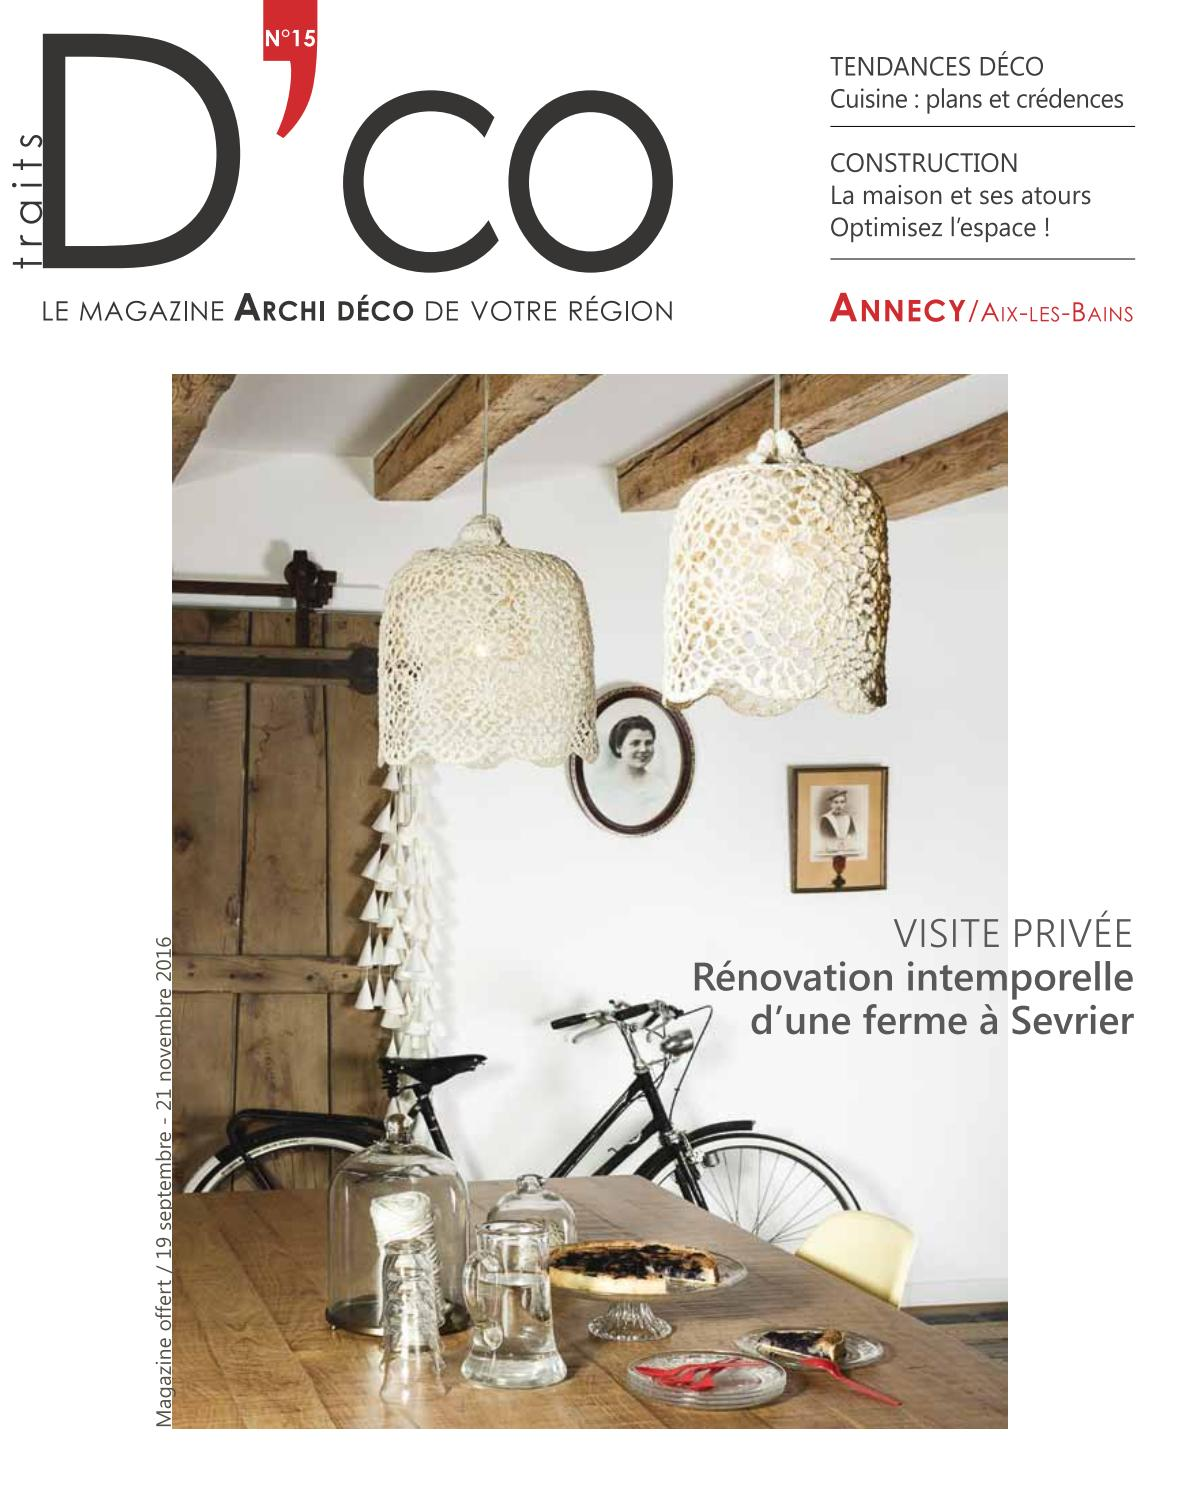 Les N15 Aix Septembre By Magazine Annecy 2016 Dco Bains Traits gb7Yf6vy